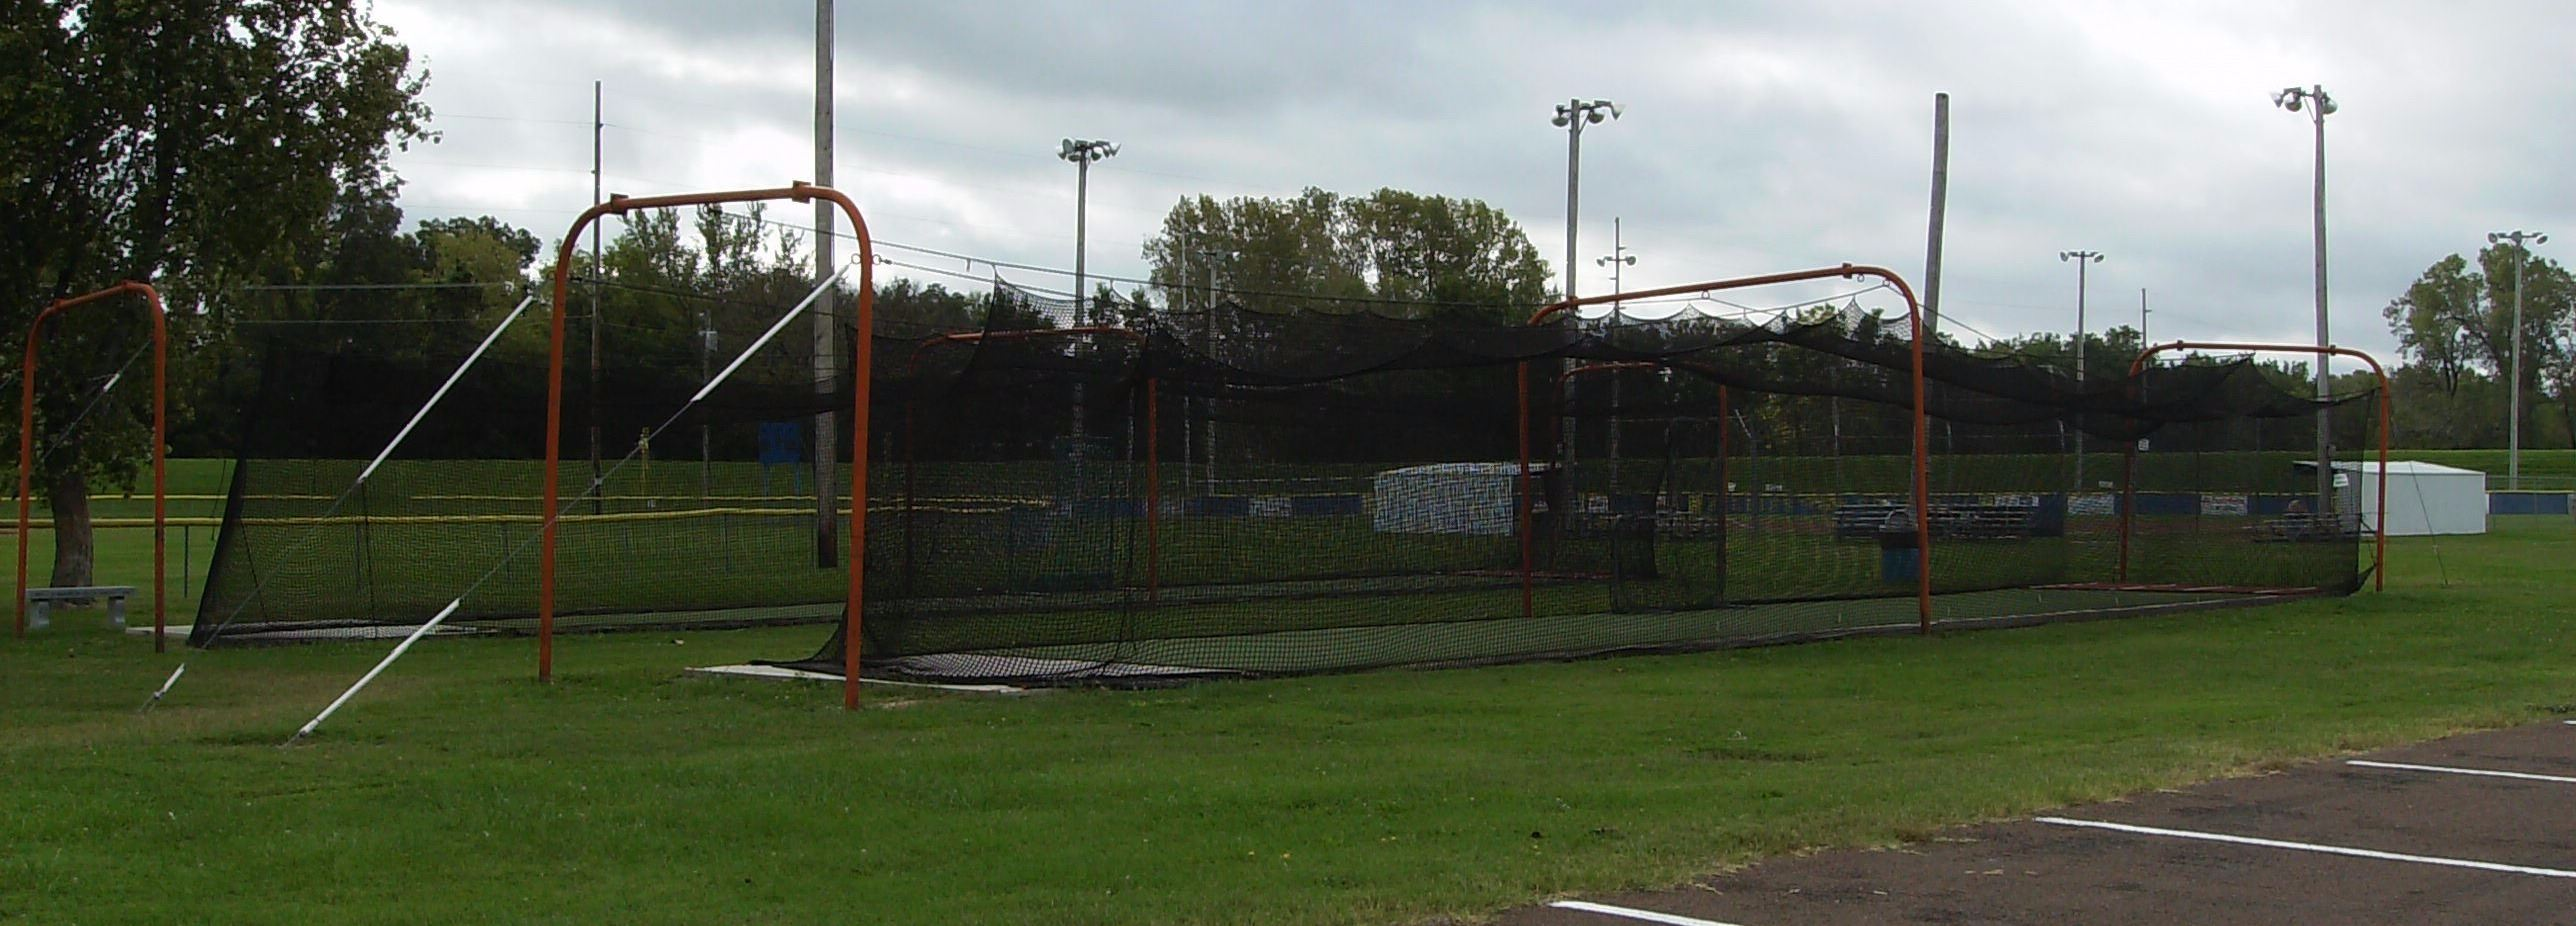 Batting Cages Located at Riverside Park